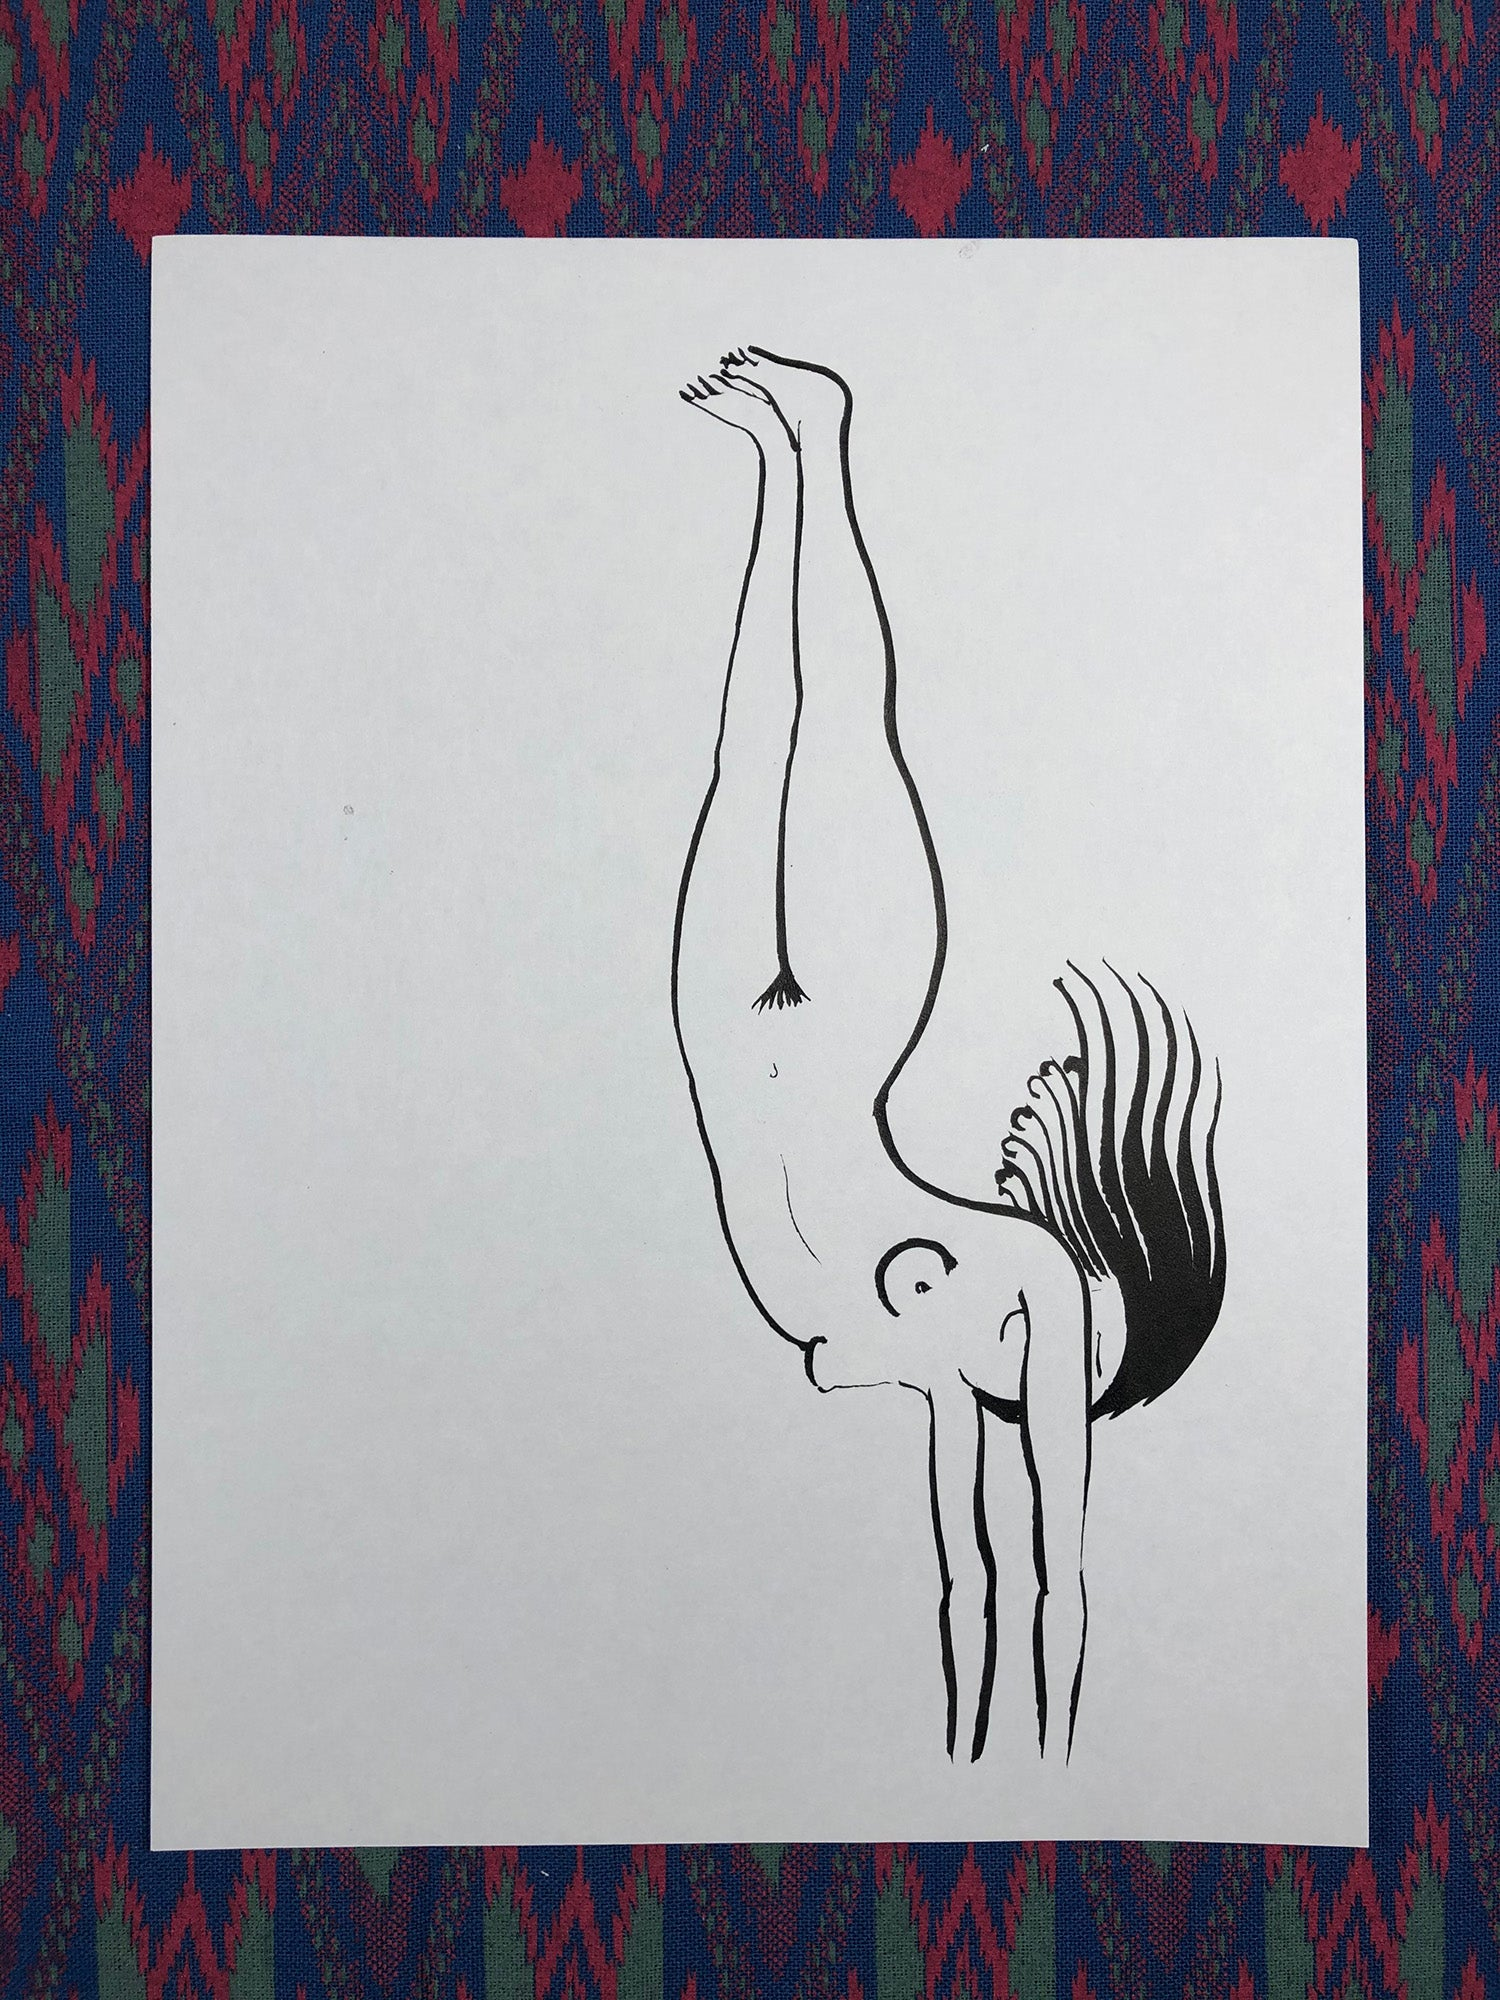 Falling Flying Ink Drawing - Original Art